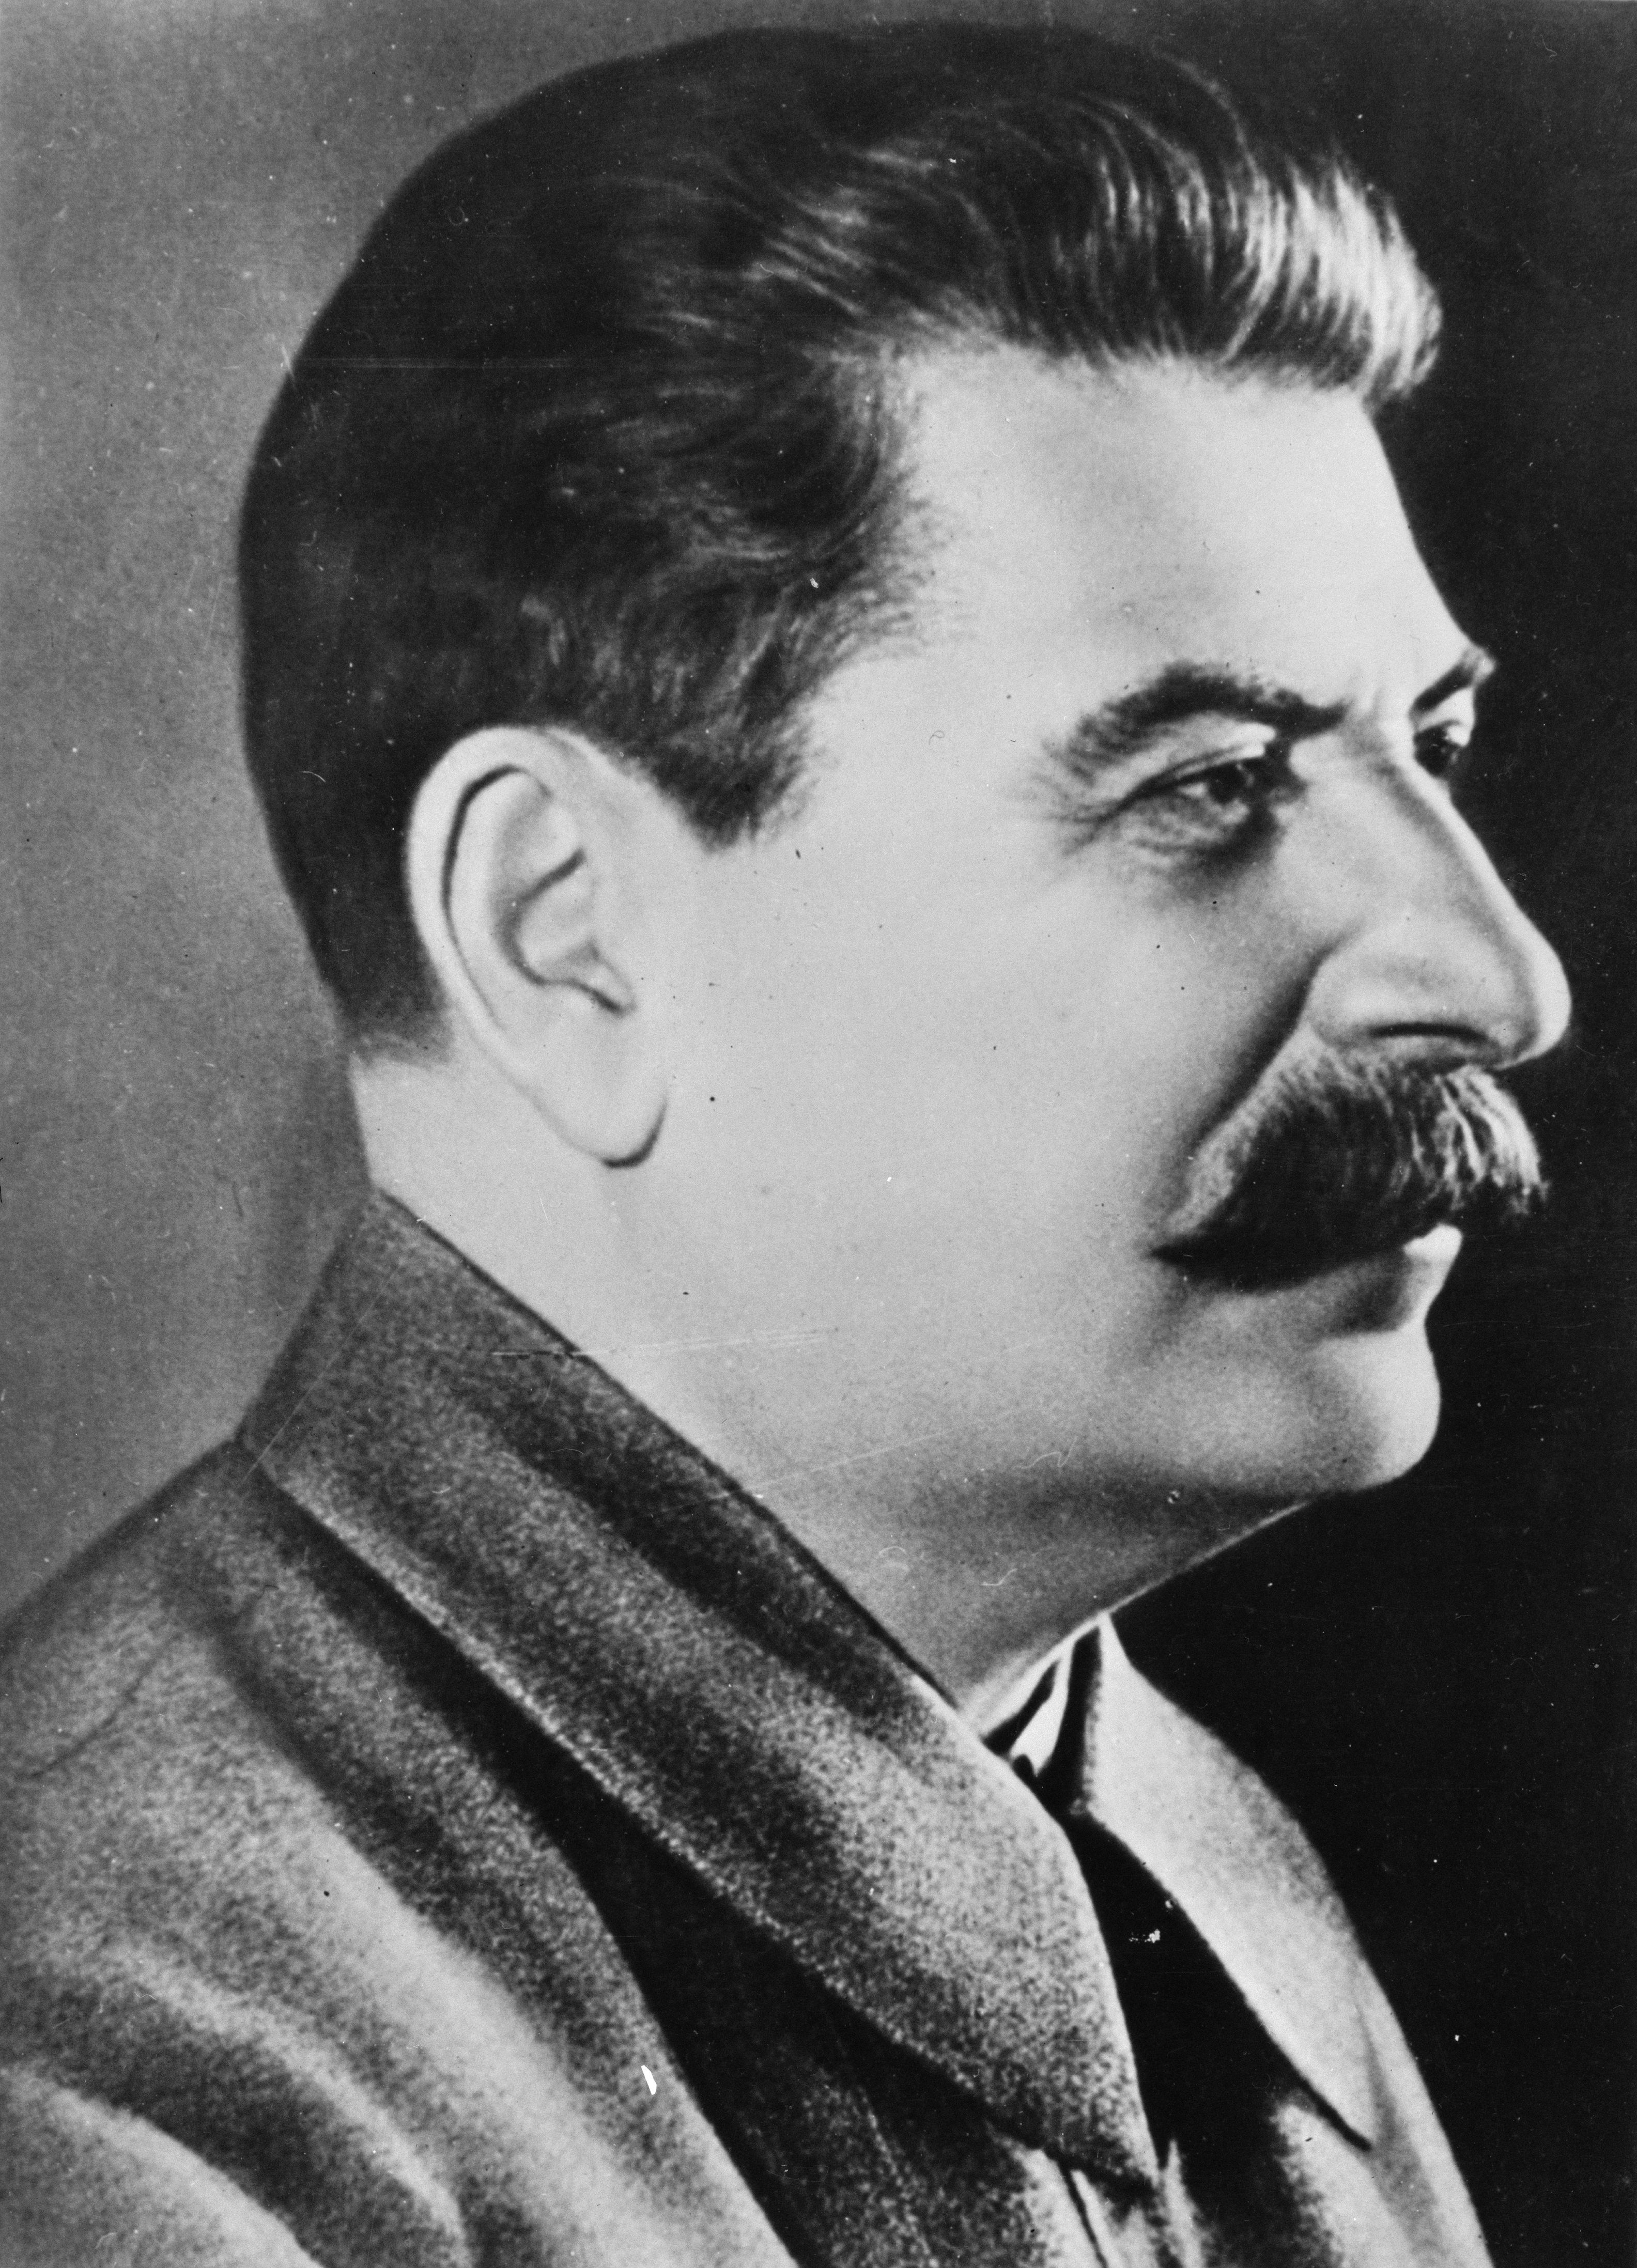 Comrade Stalin's official portrait for 1942.